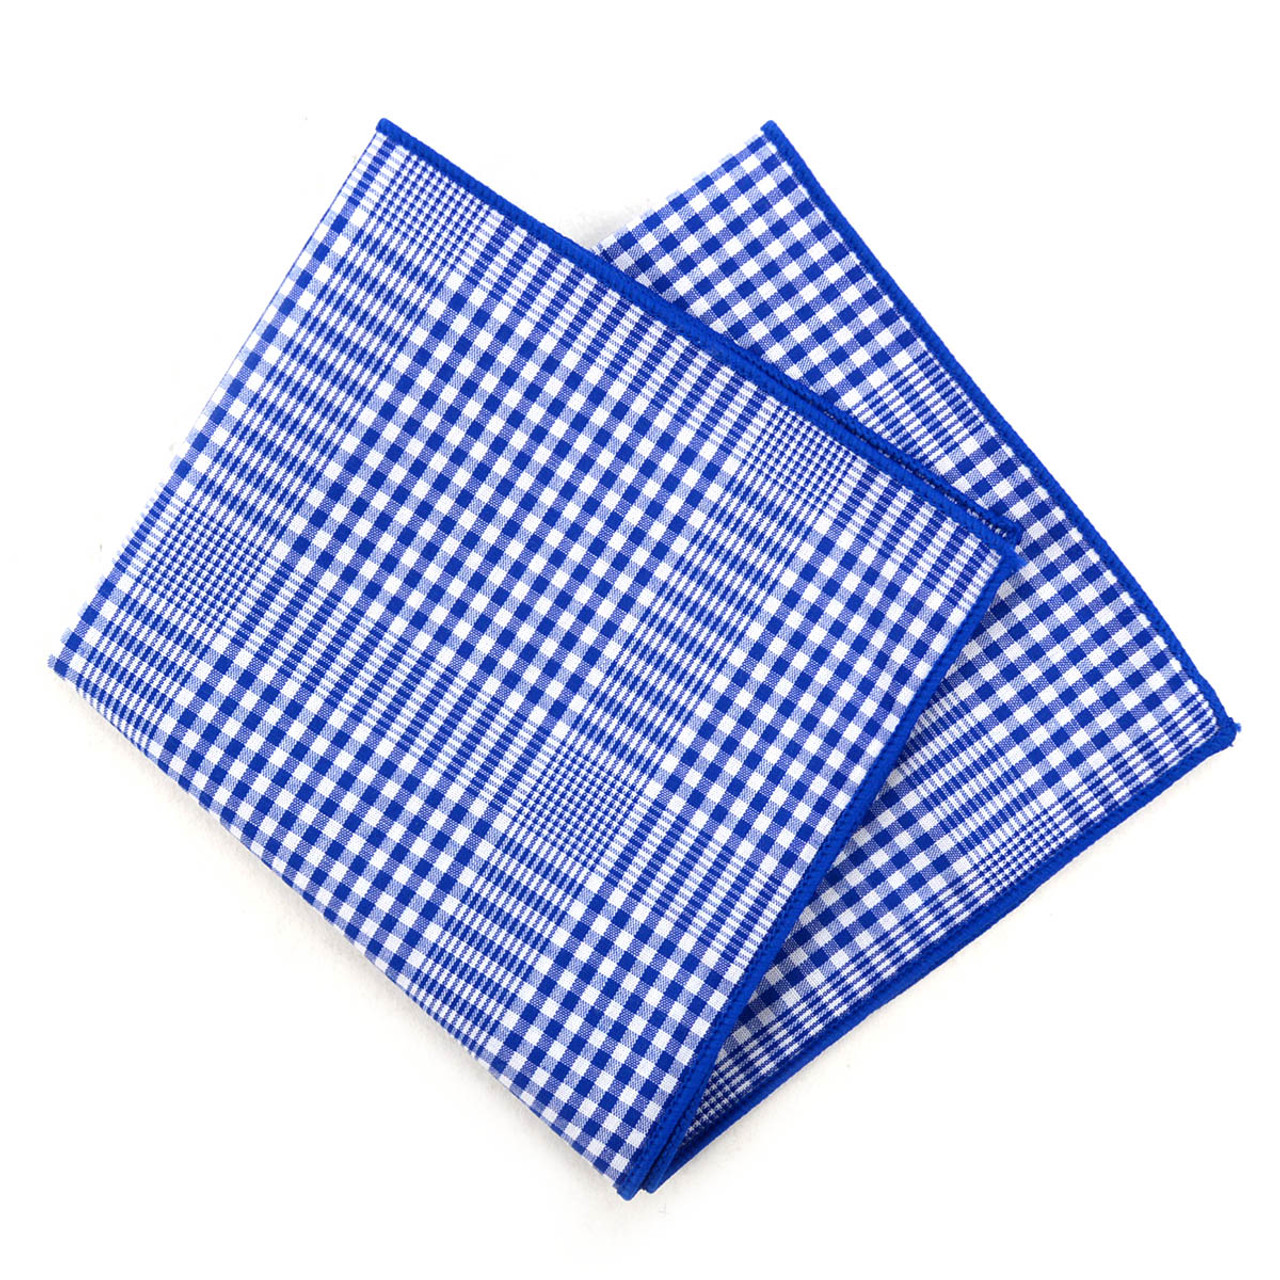 12pc Blue & White 100% Cotton Checkered Plaid Pocket Square Handkerchiefs